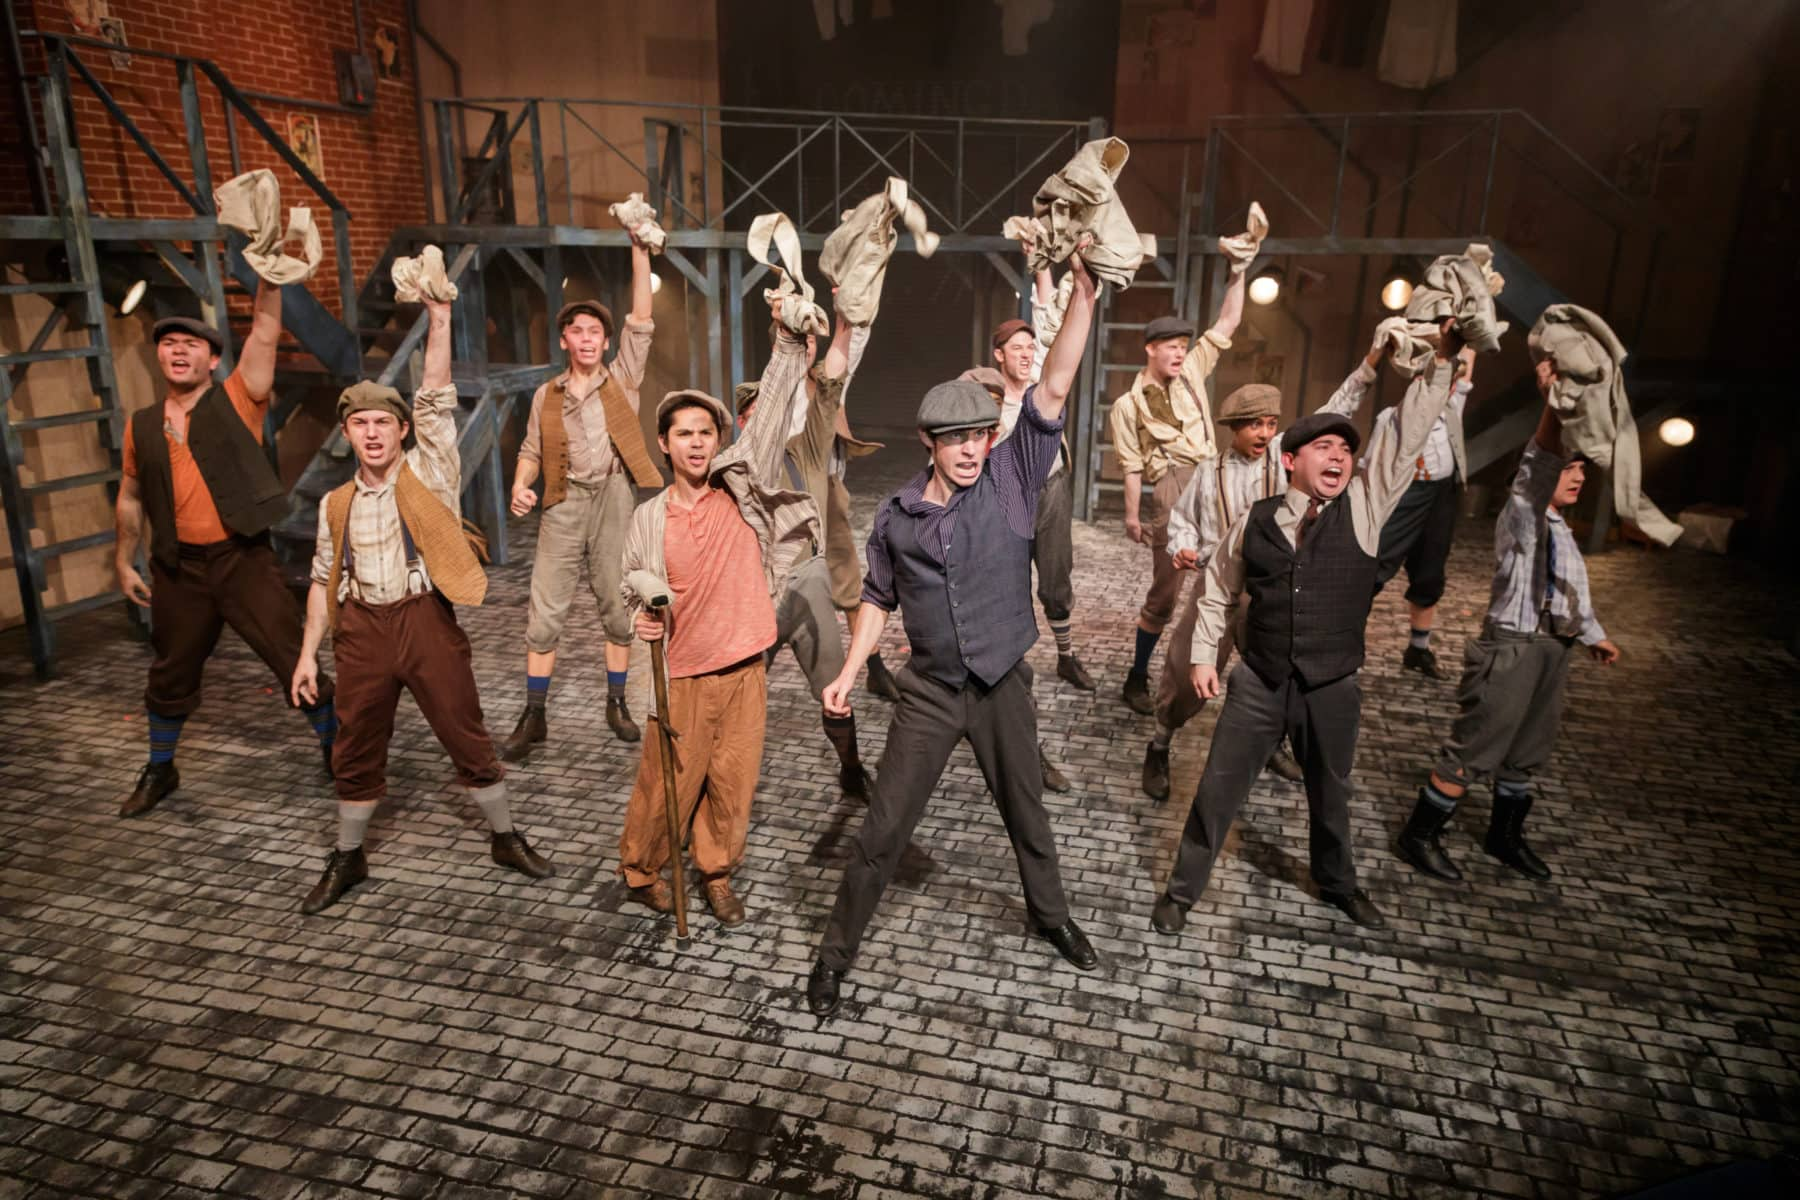 """The Newsies form a union in Newsies Square(L to R) Stephen Kanaski as Crutchie, Kamren Mahaney as Jack Kelly, James Jones as Davey, Noah Itzkovitz as Les, and the rest of the newsboys in """"Newsies"""" at Hillbarn Theatre."""